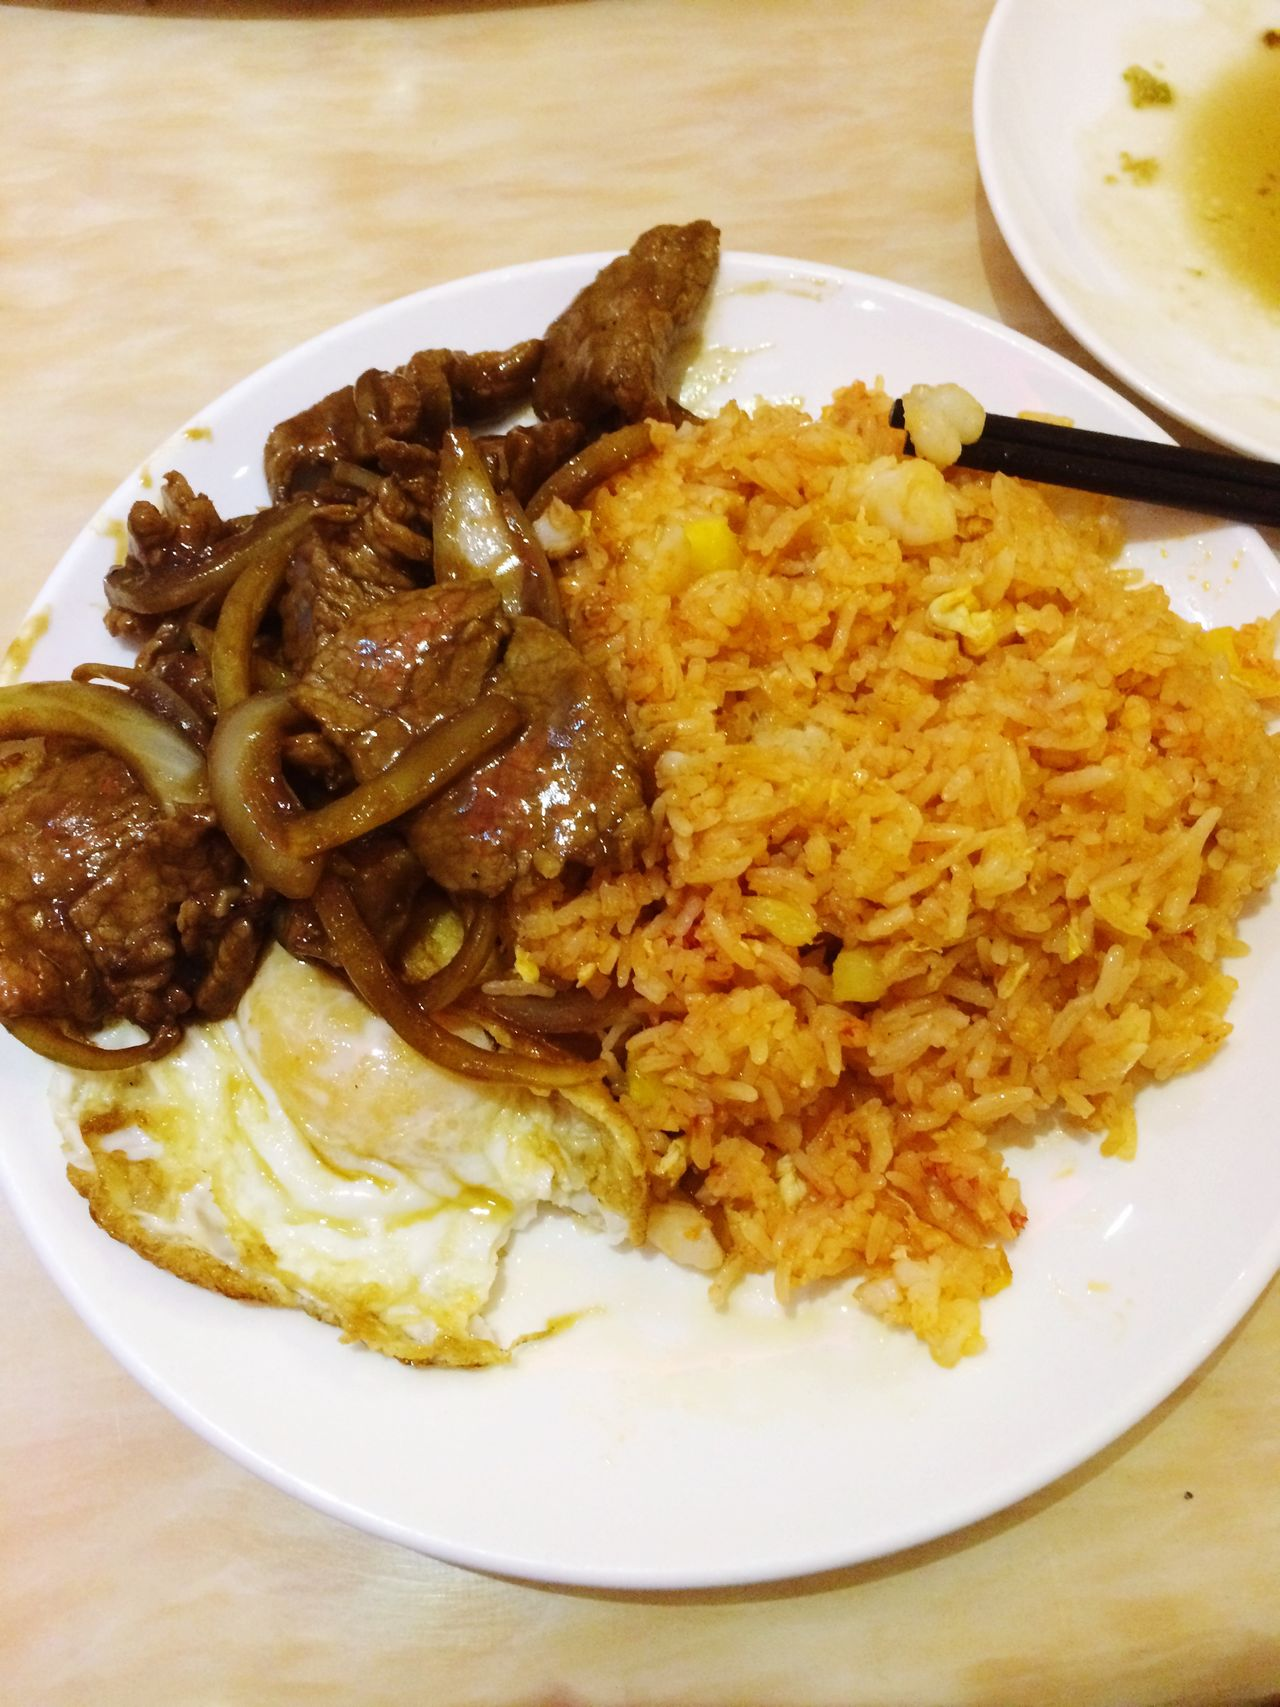 Brunch Around The World Loklak Food Cuisine Cooking Rice Meal